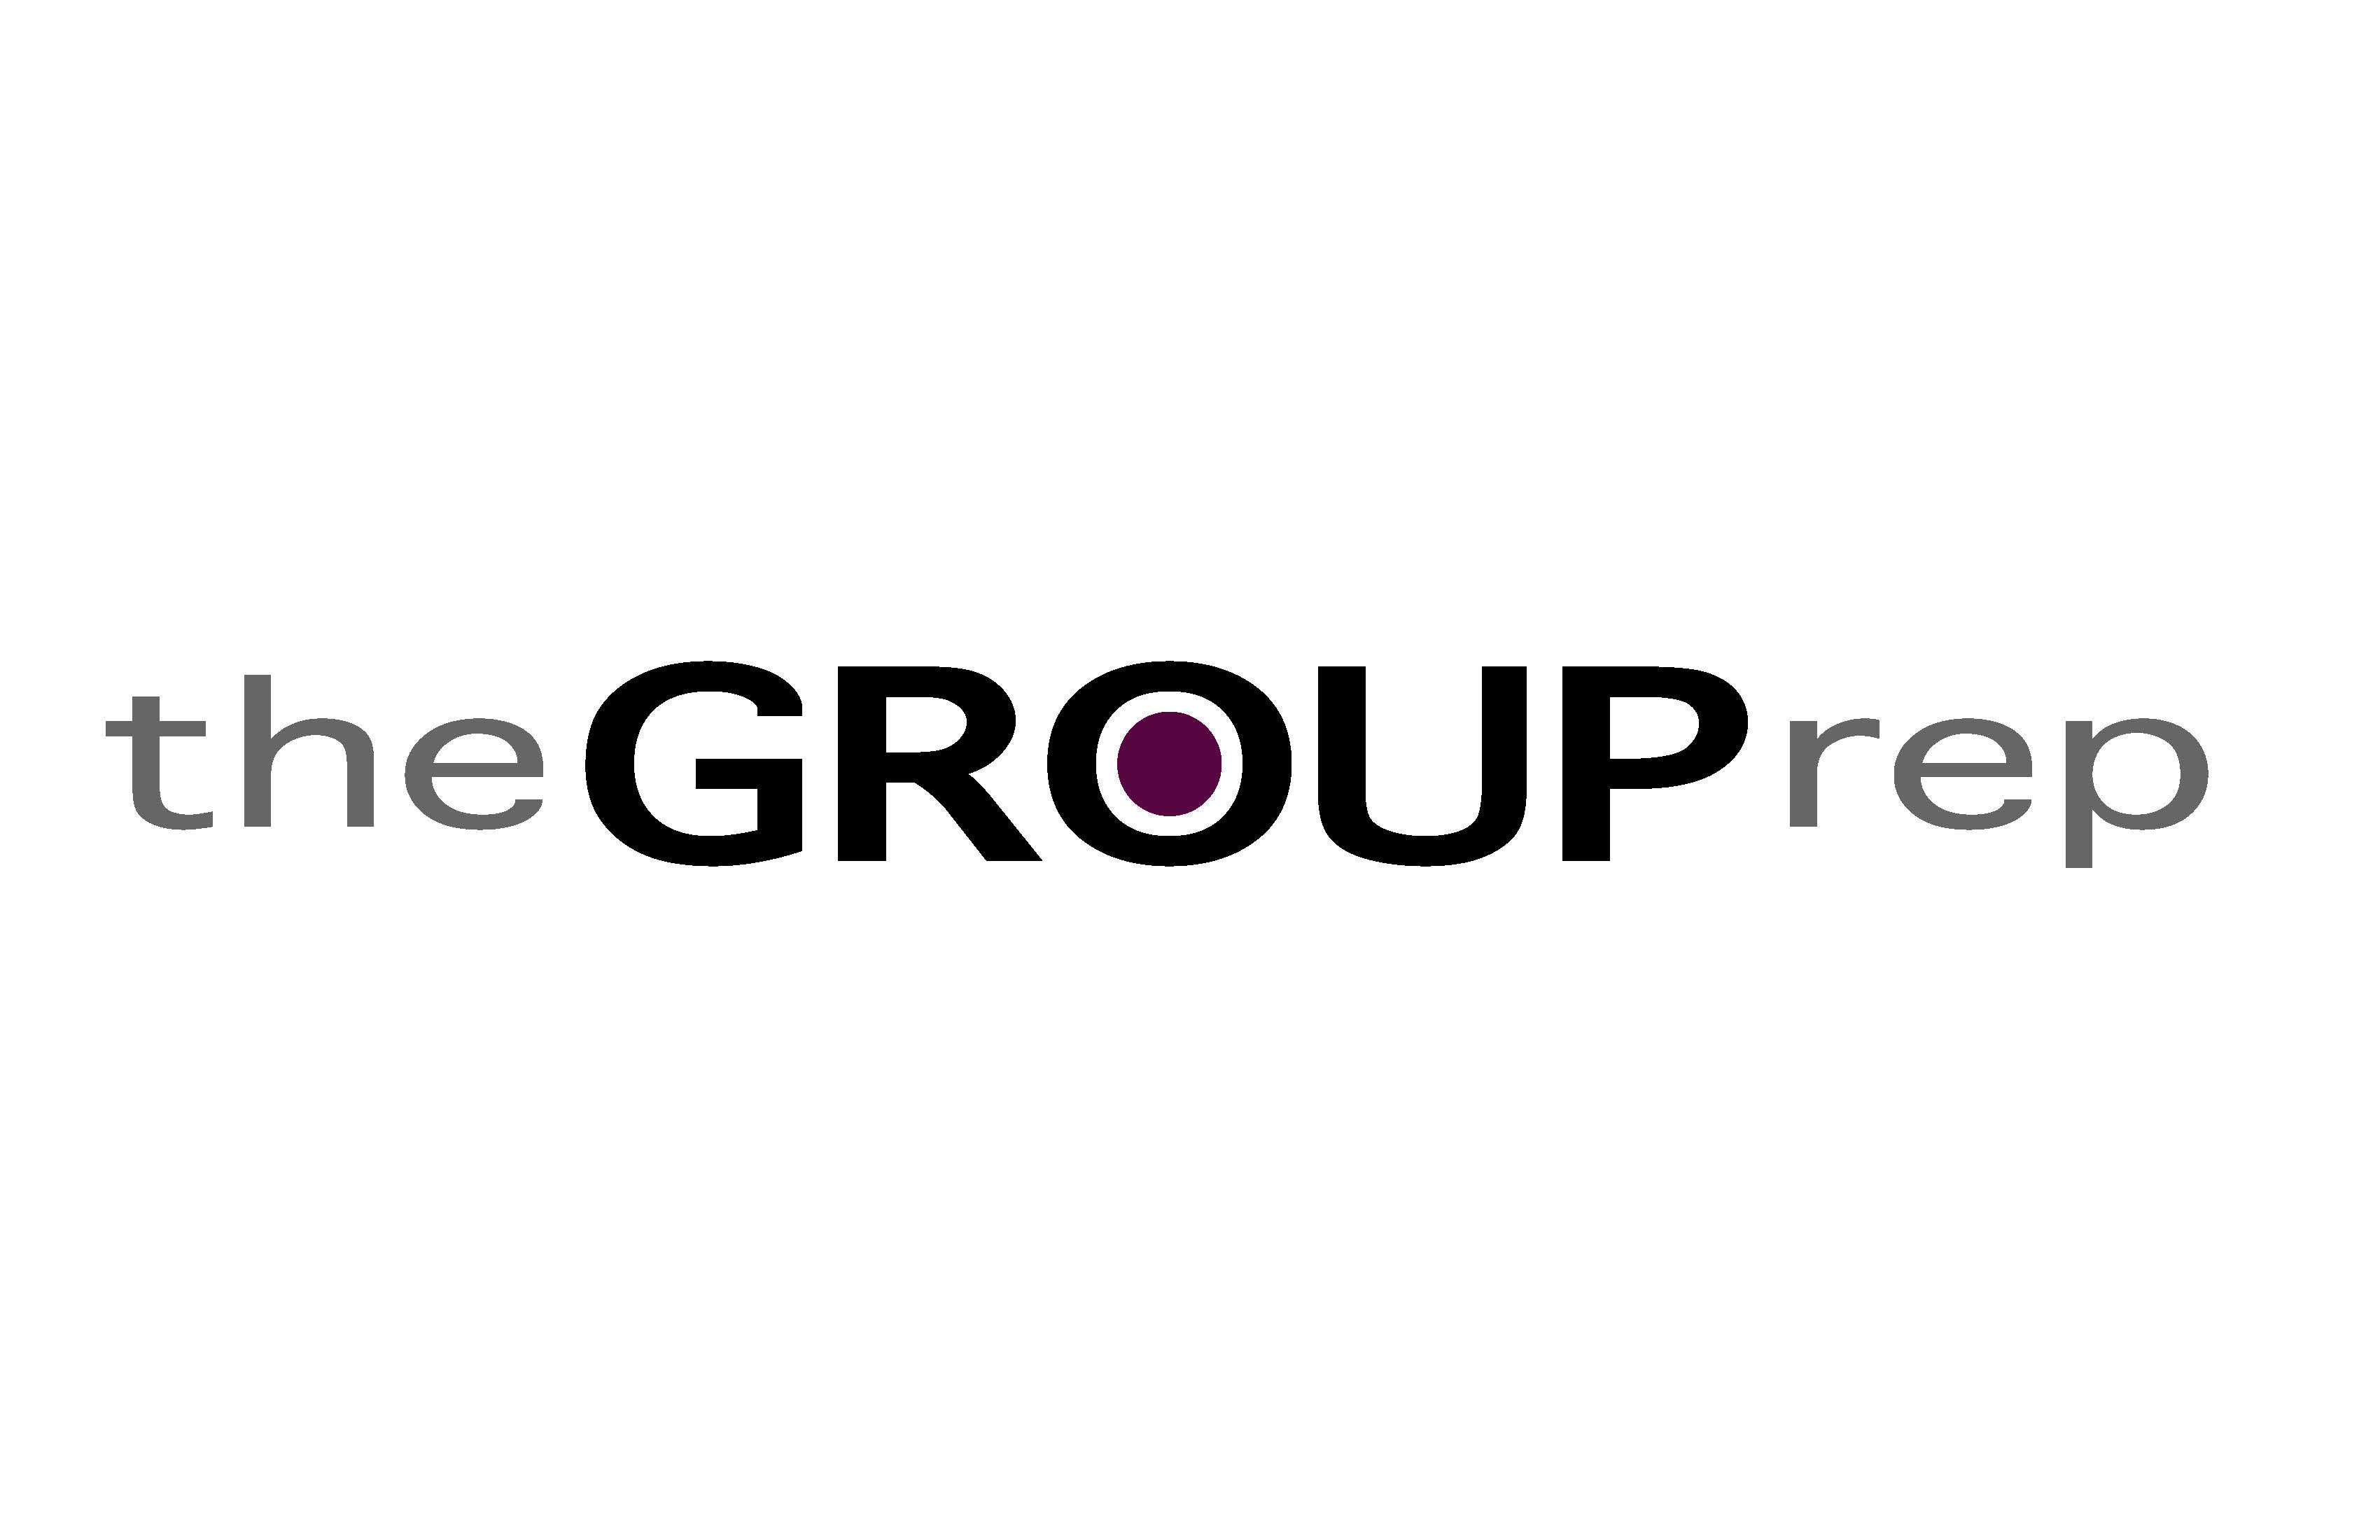 The Group Rep